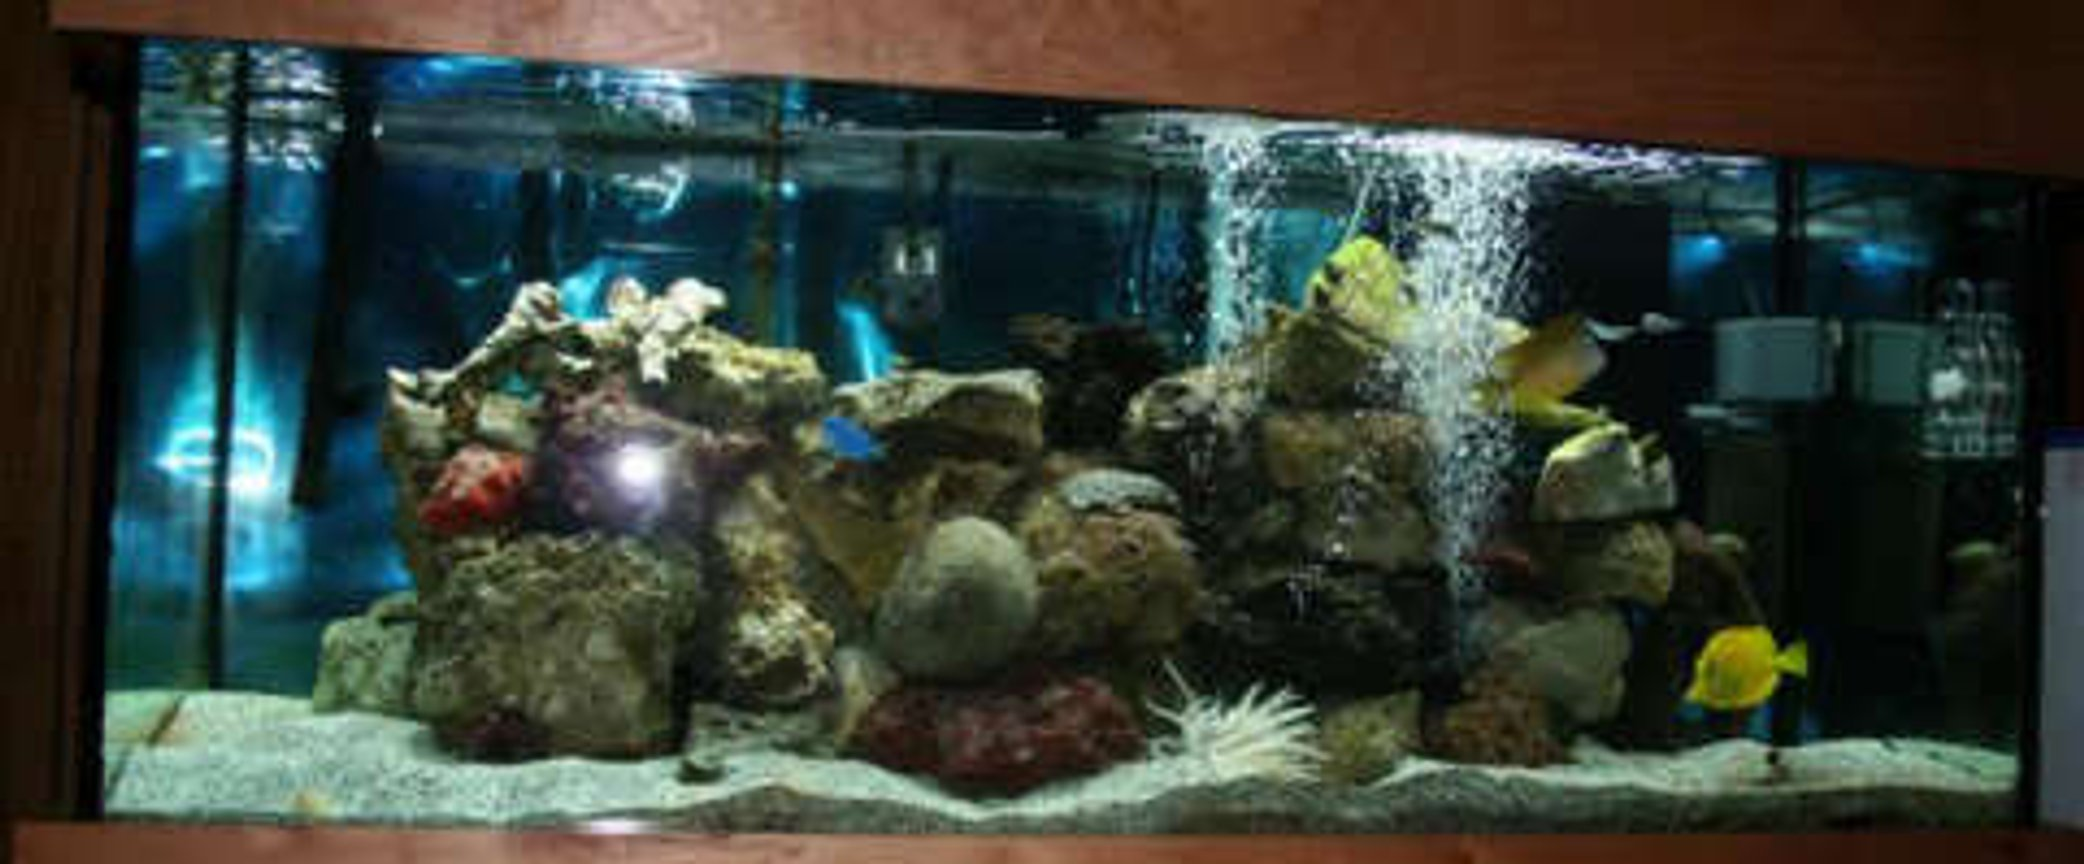 75 gallons saltwater fish tank (mostly fish, little/no live coral) - 75 gallon tank